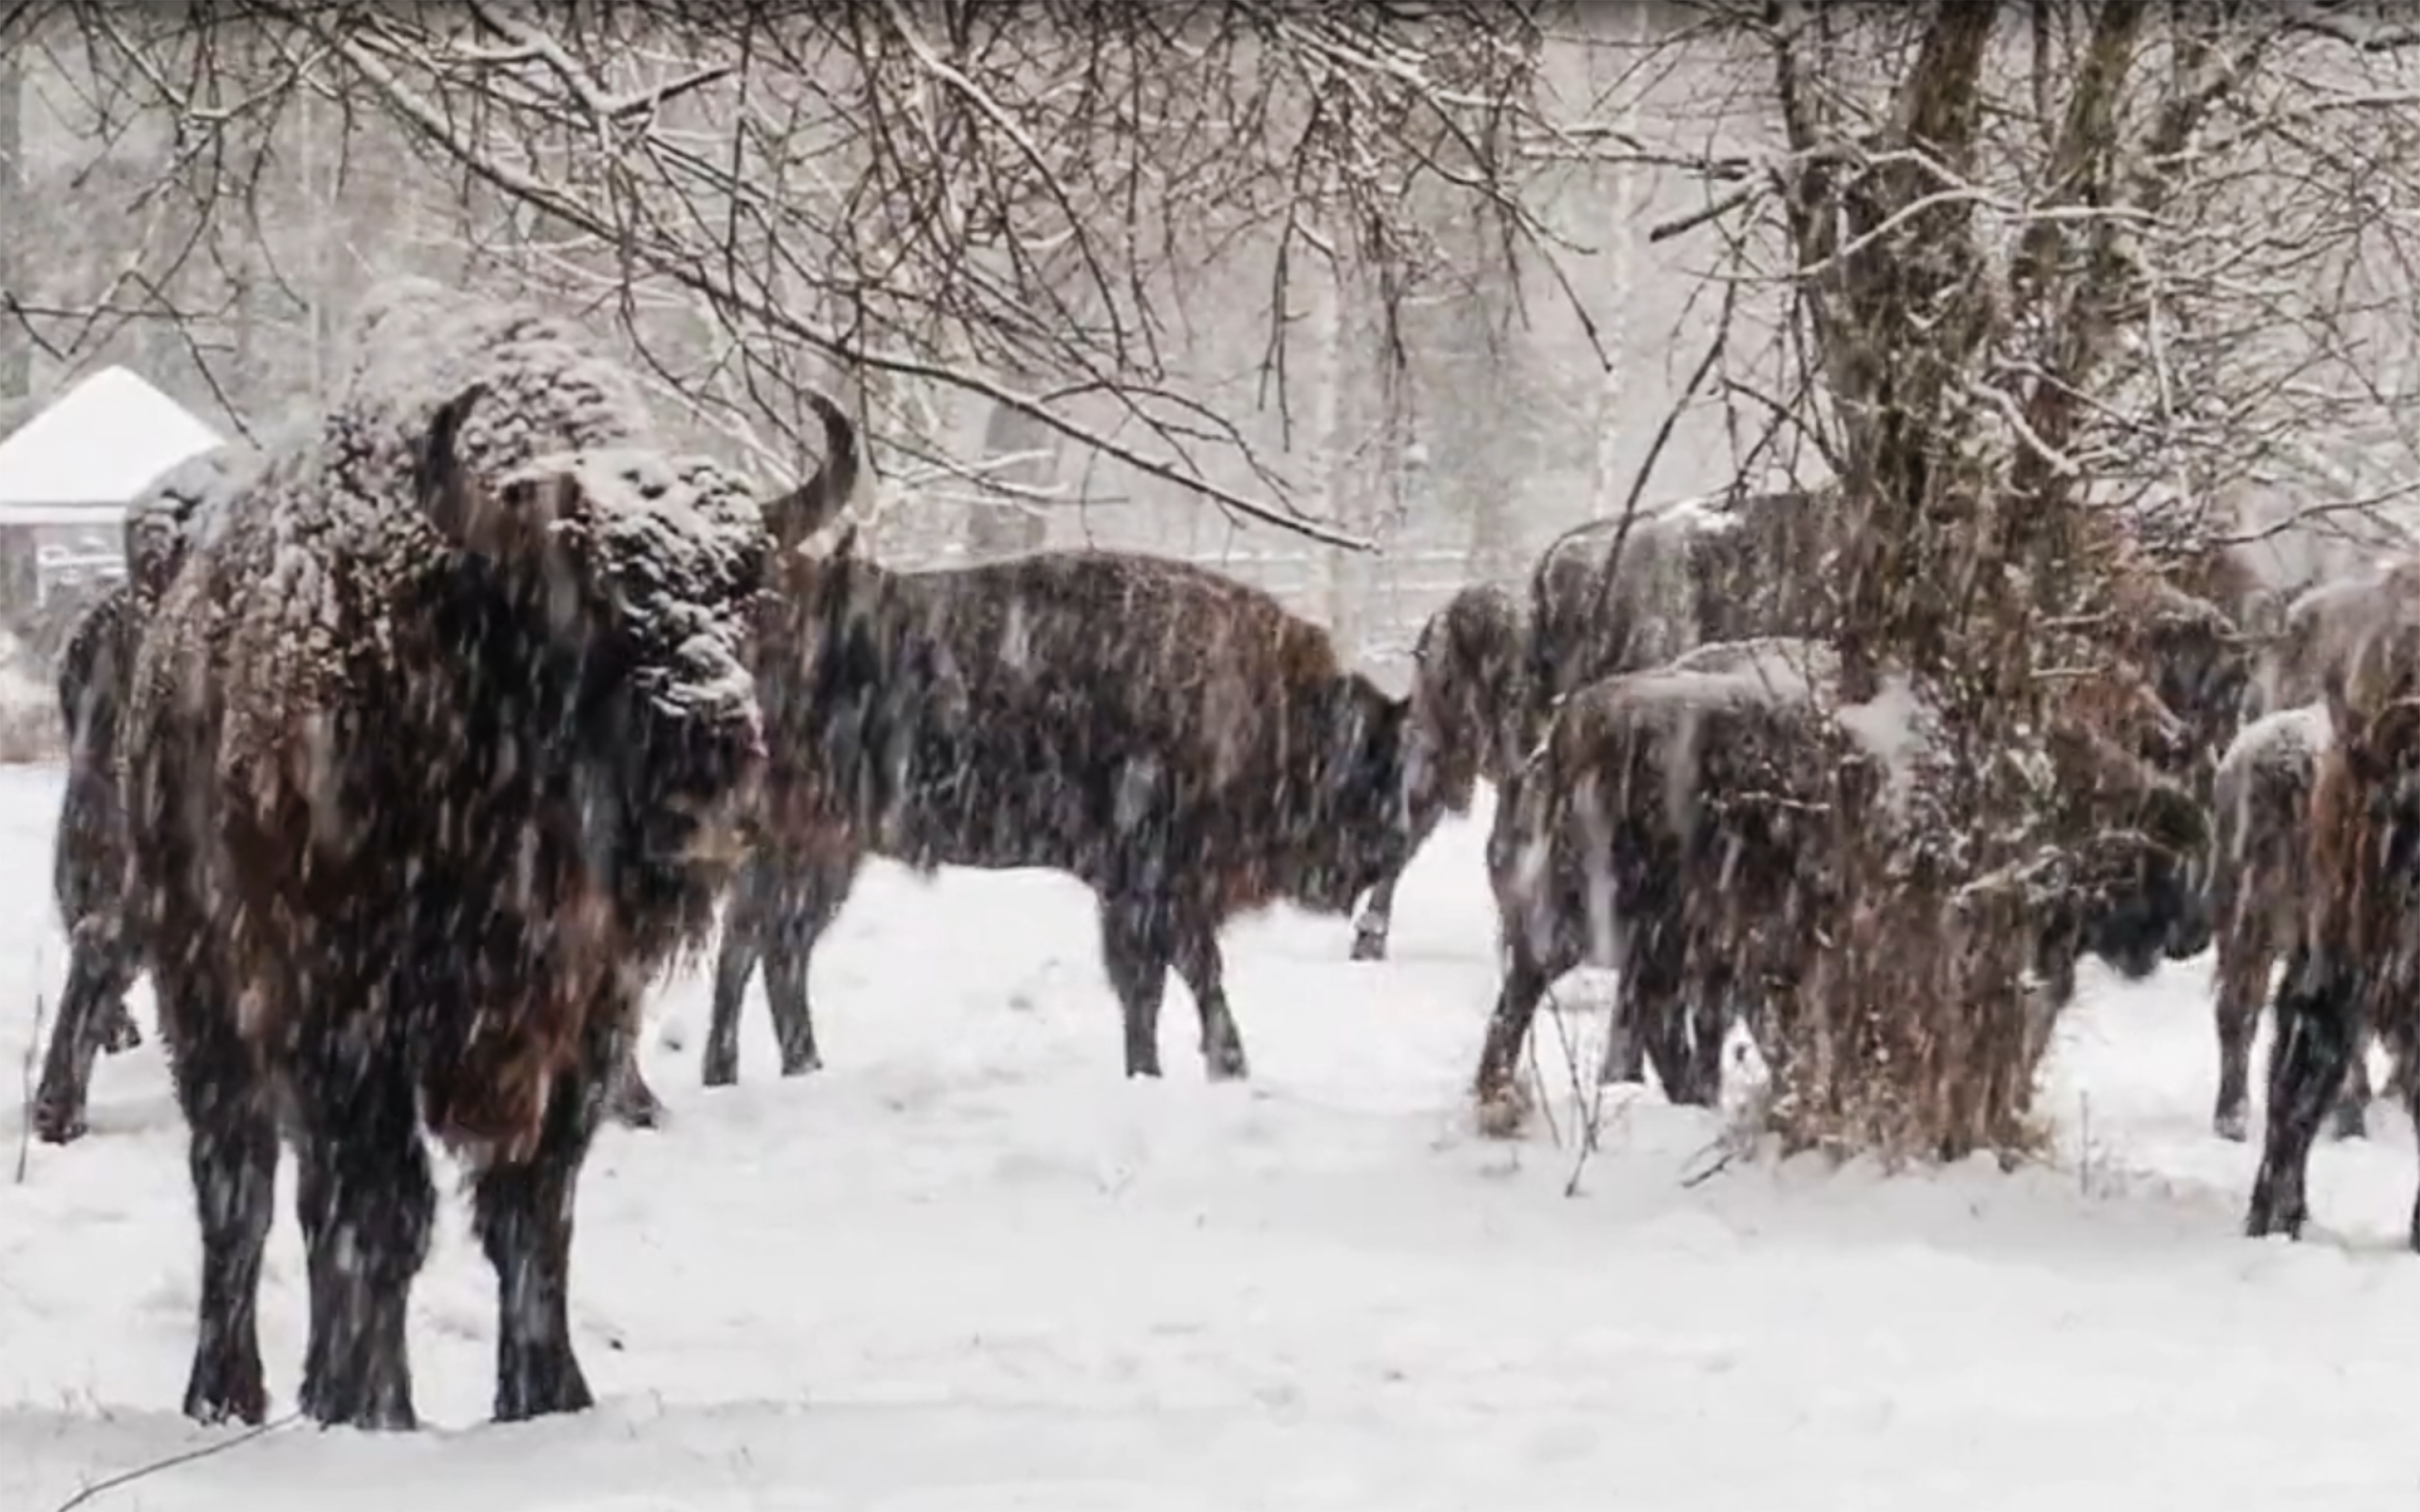 Our young bison started a free life in the forests of Bryansk